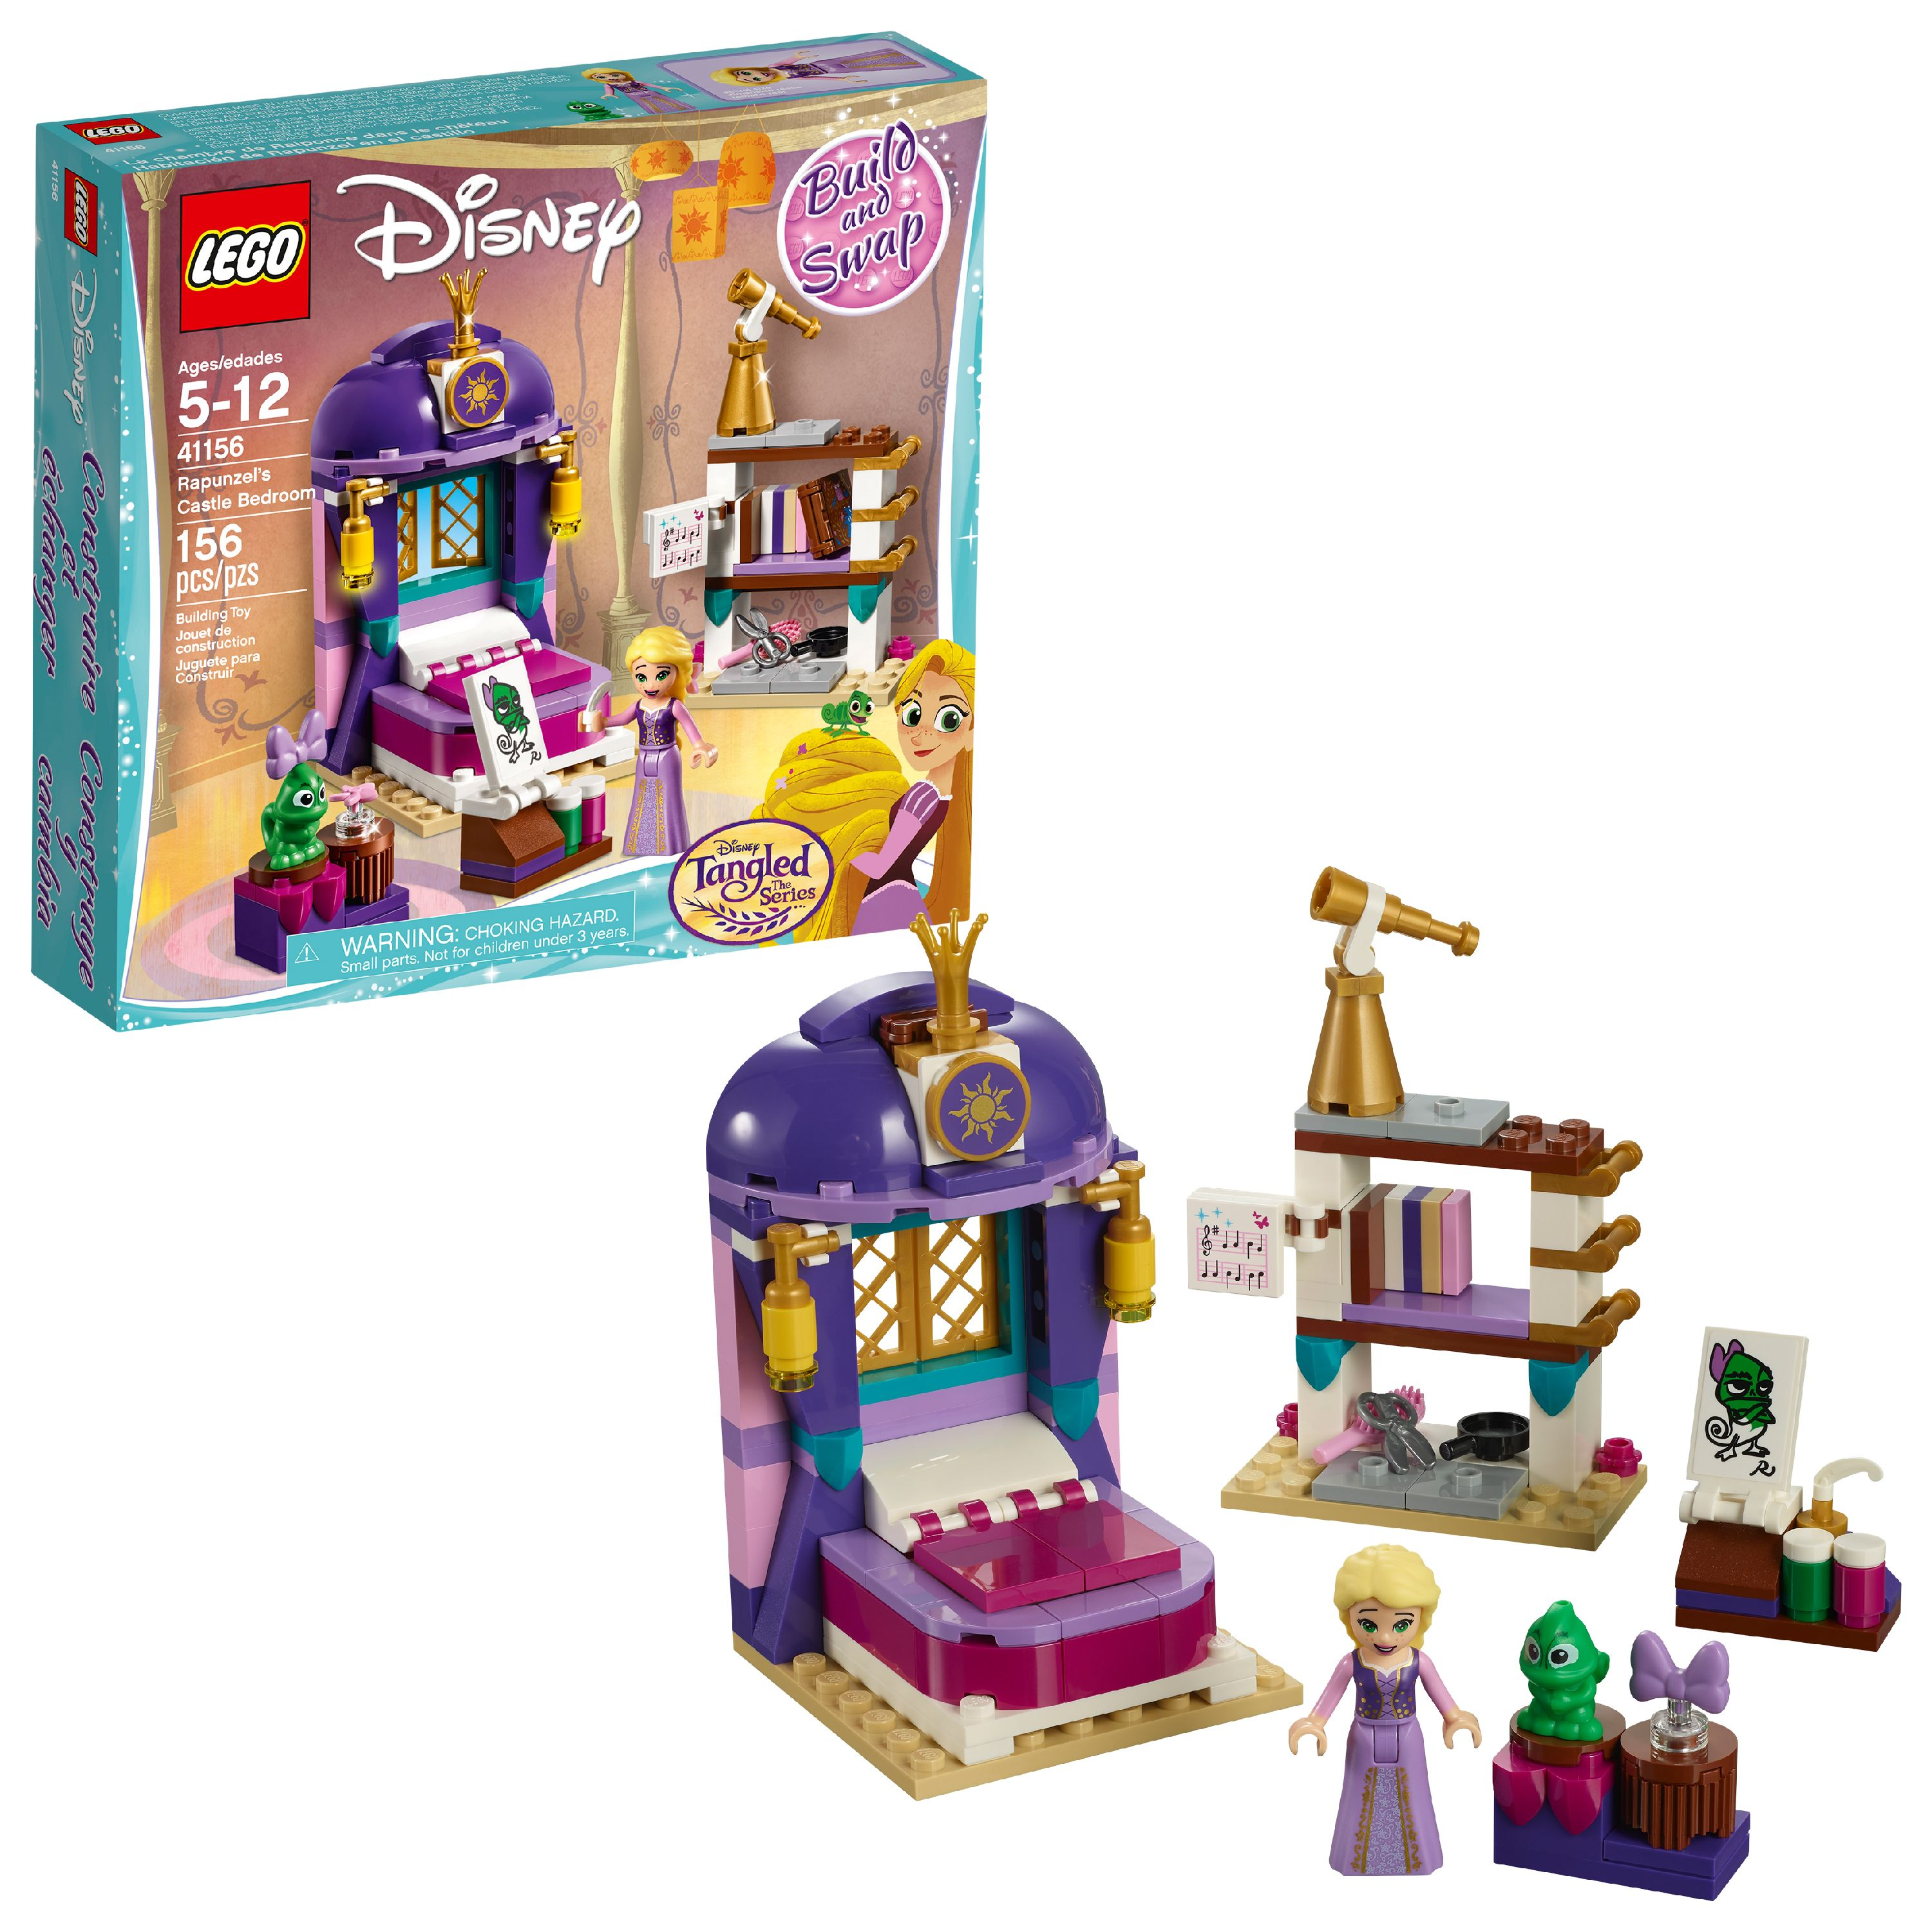 LEGO Disney Princess Rapunzel's Castle Bedroom 41156